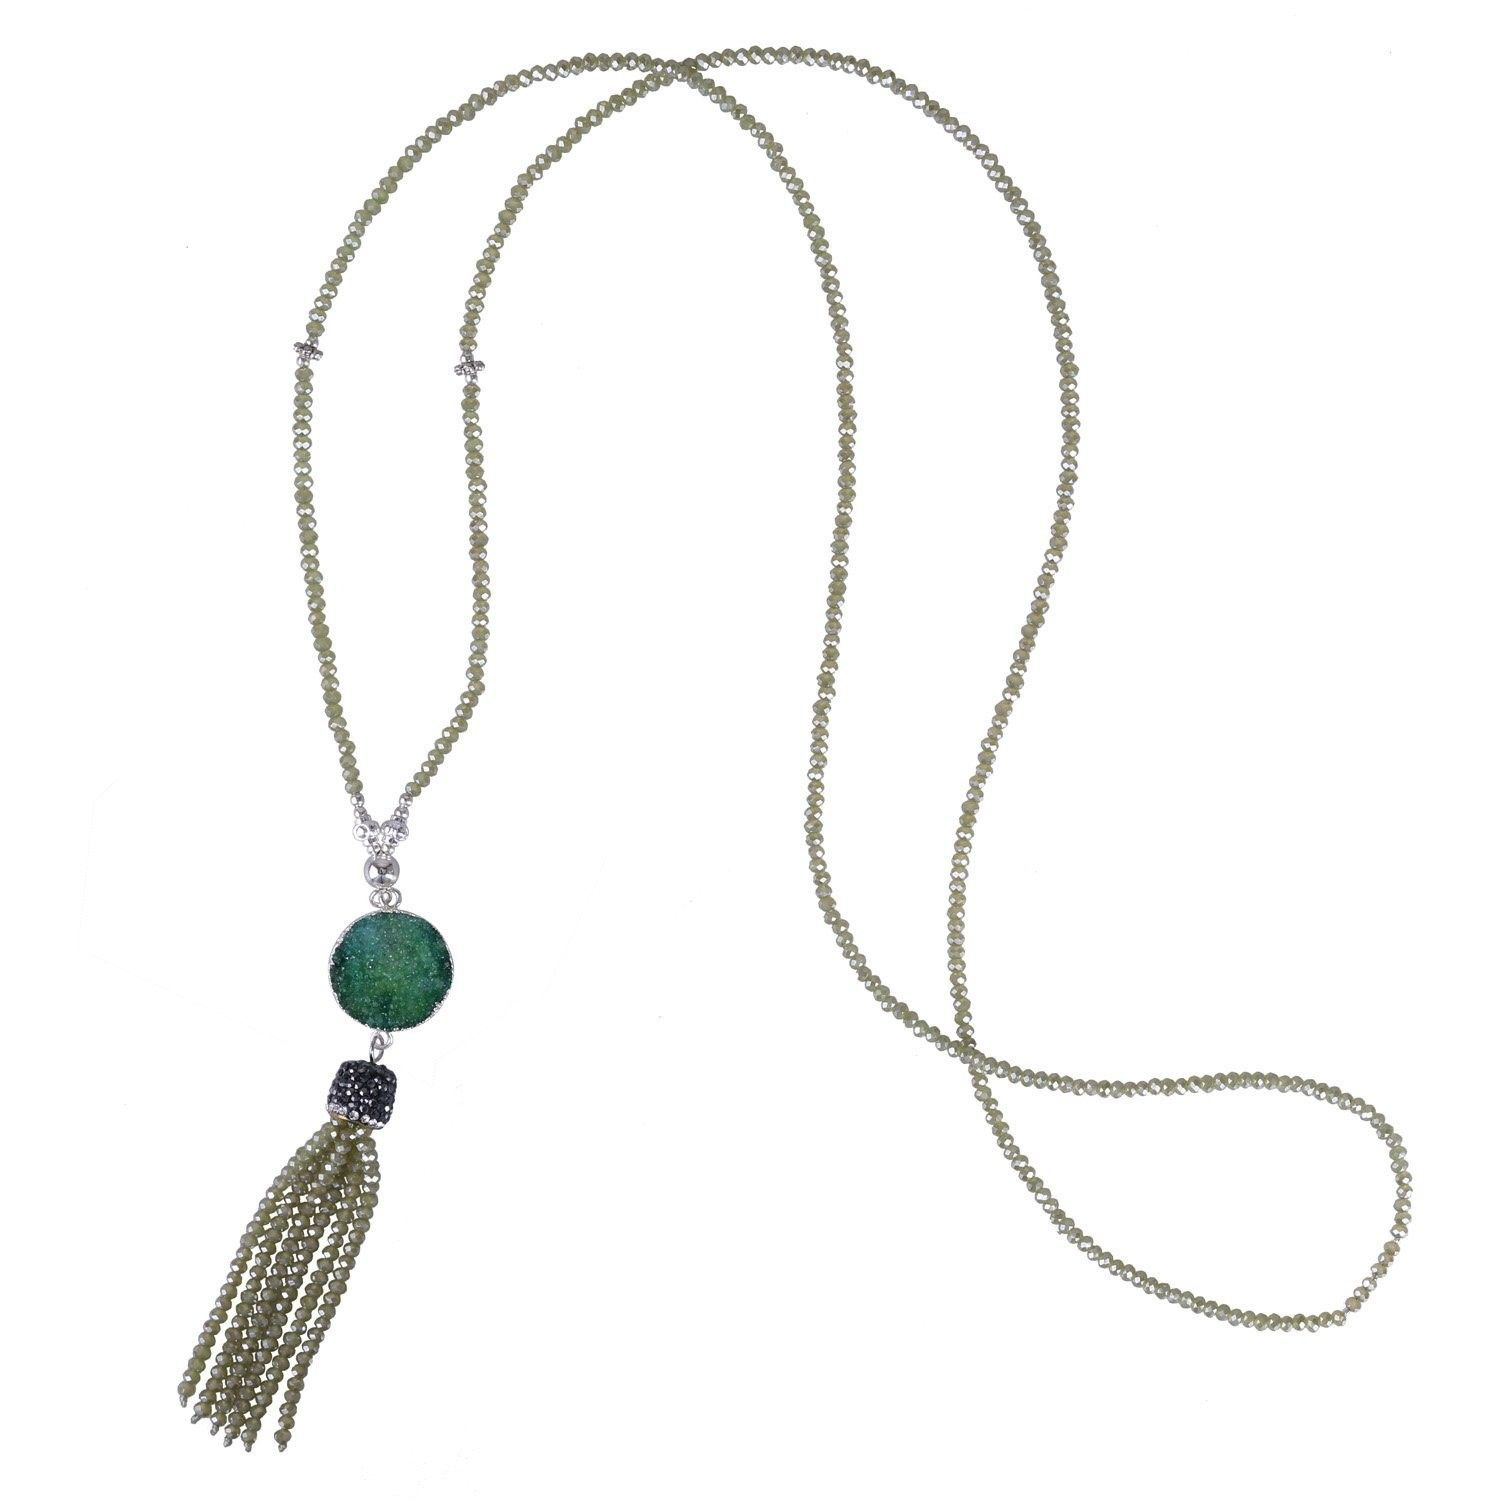 Long Crystal Beaded Necklace With Pave Crystal Capped Tassel With Regard To Best And Newest Beads & Pavé Necklaces (Gallery 23 of 25)